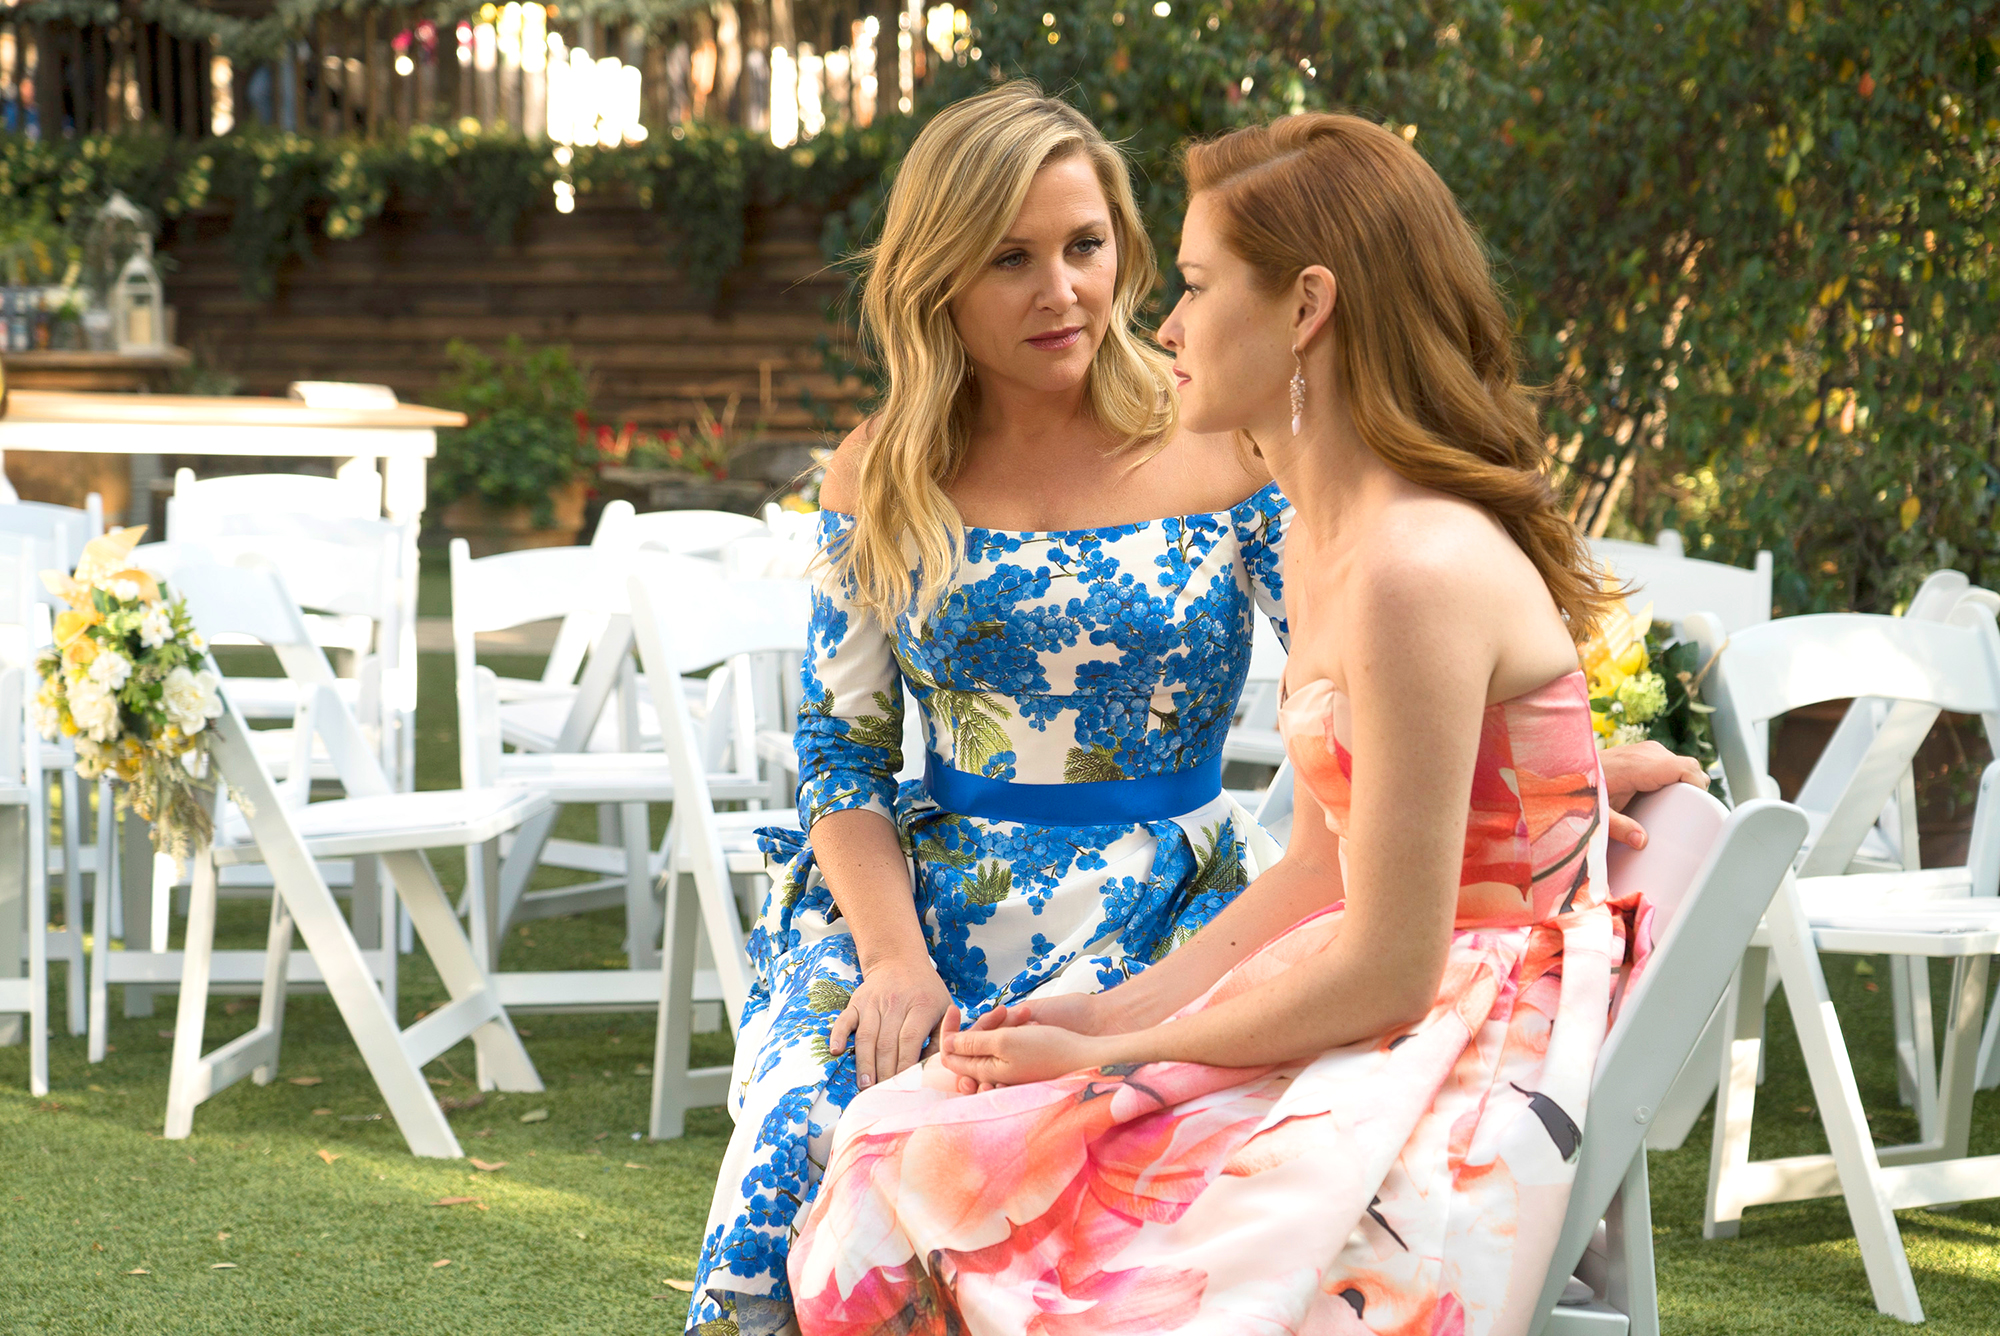 A Timeline 'Grey's Anatomy' Behind-the-Scenes Drama - Fans were shocked after ABC announced in March 2018 that Sarah Drew and Jessica Capshaw were not returning to the show for season 15. (Drew was on the series for nine seasons, while Capshaw appeared on 10.)